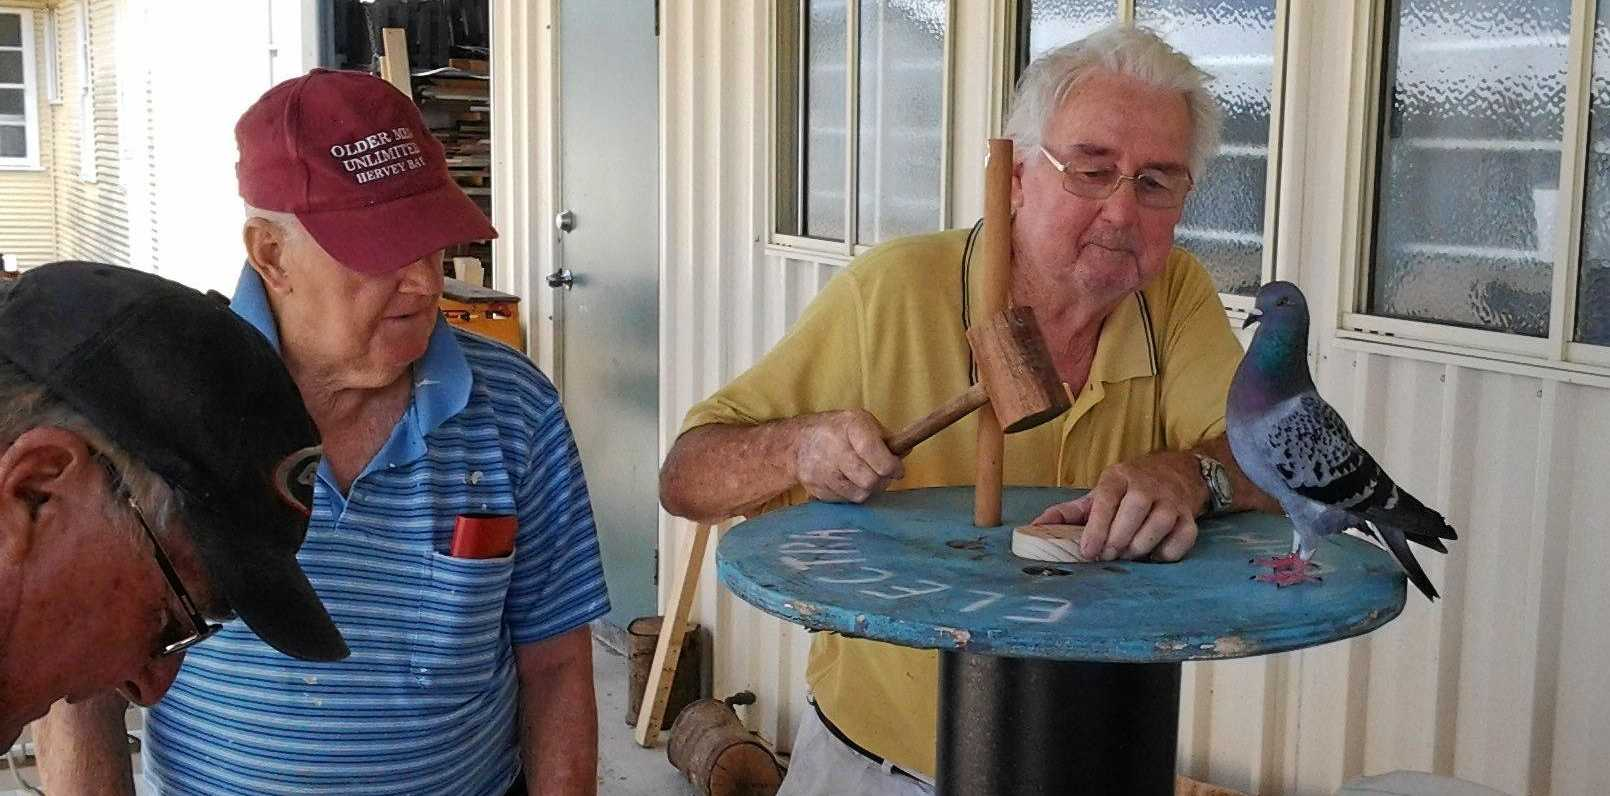 LOVE BIRD: The pigeon known for 'racing cars' in Maryborough visits the Older Men's Unlimited group at their workshop.